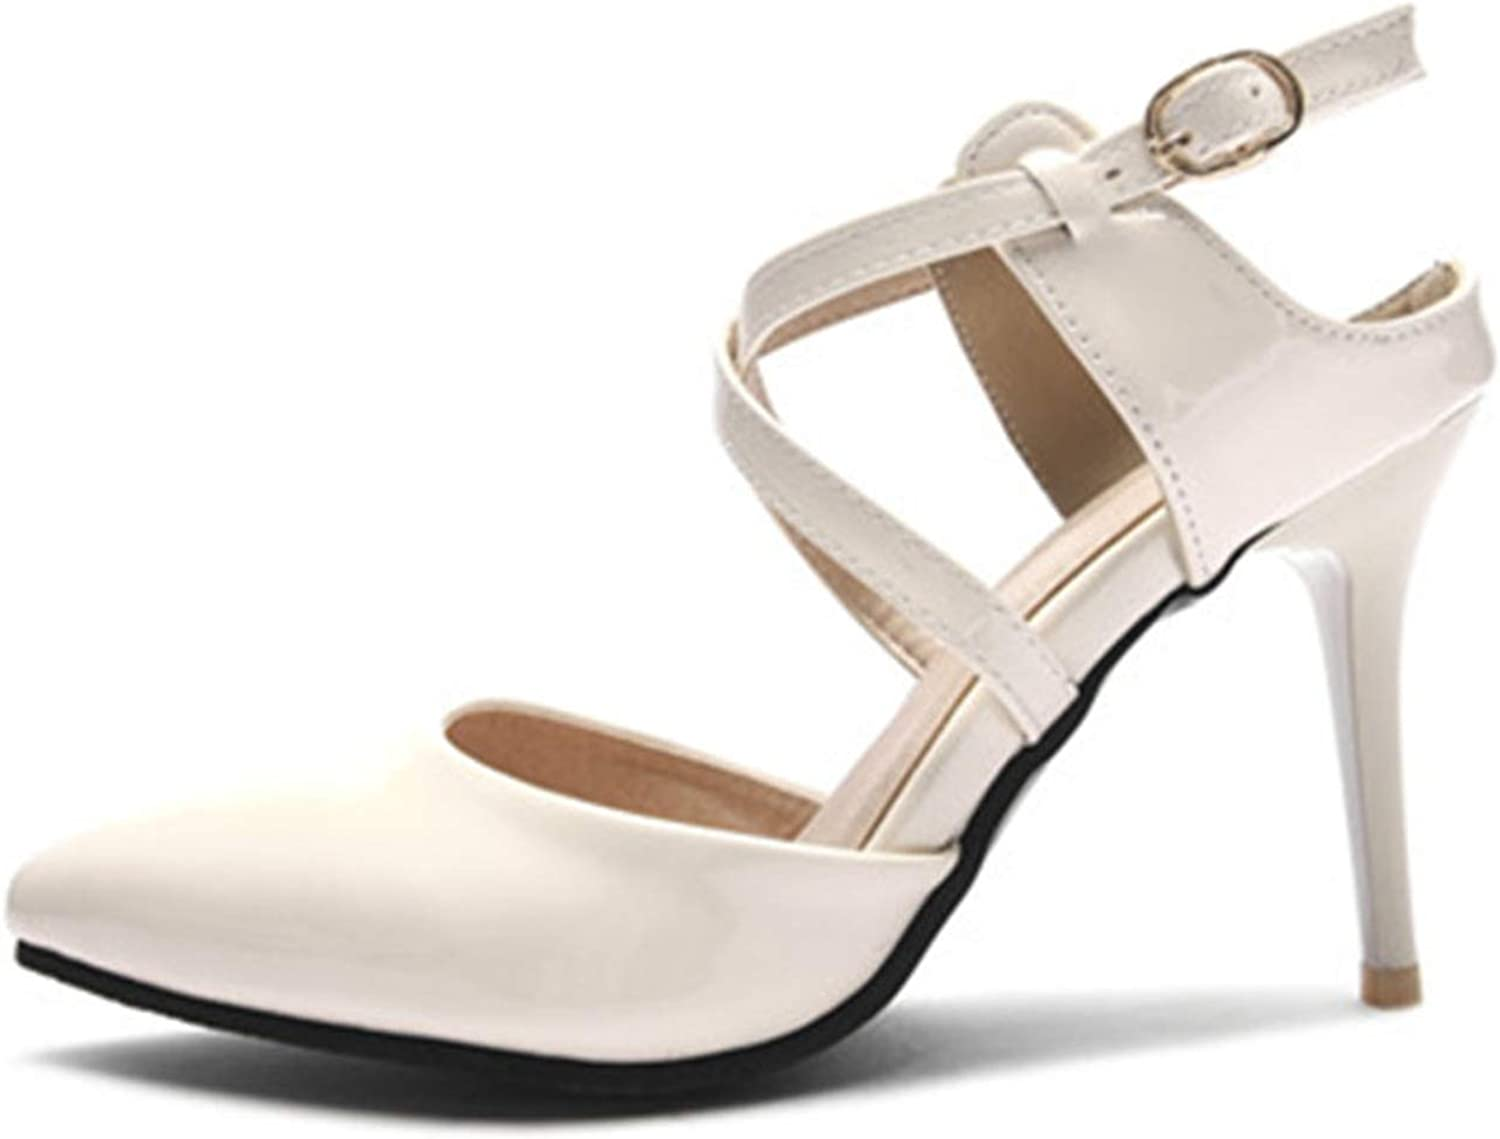 Heart to Hear Big Size Summer shoes for Women Pointed Toe Buckle Ladies shoes,